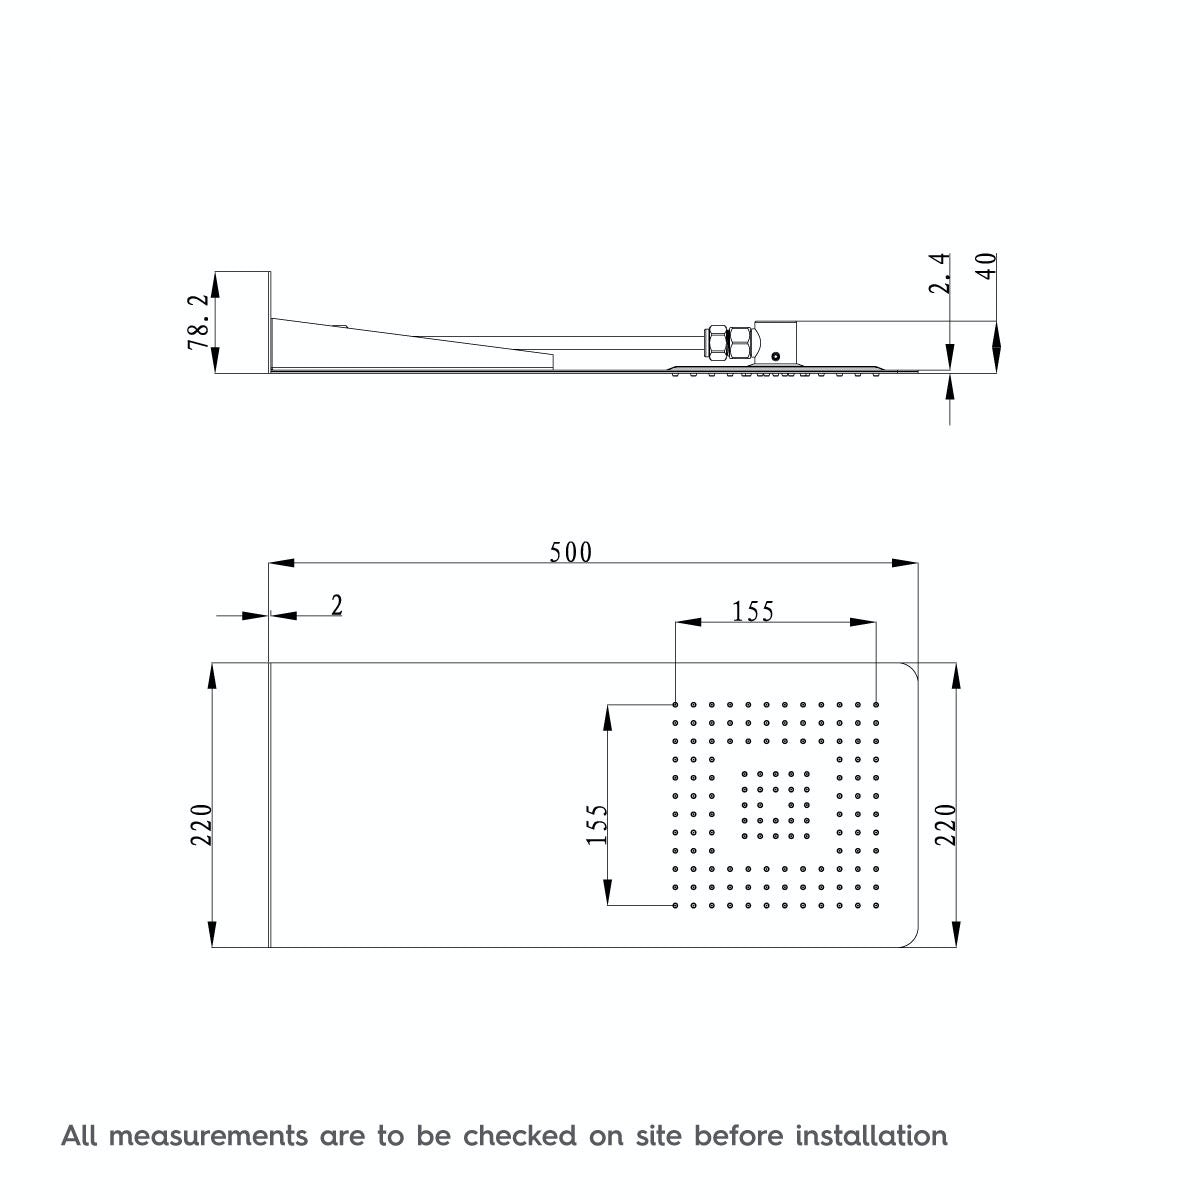 Dimensions for Mode Ando waterfall shower head